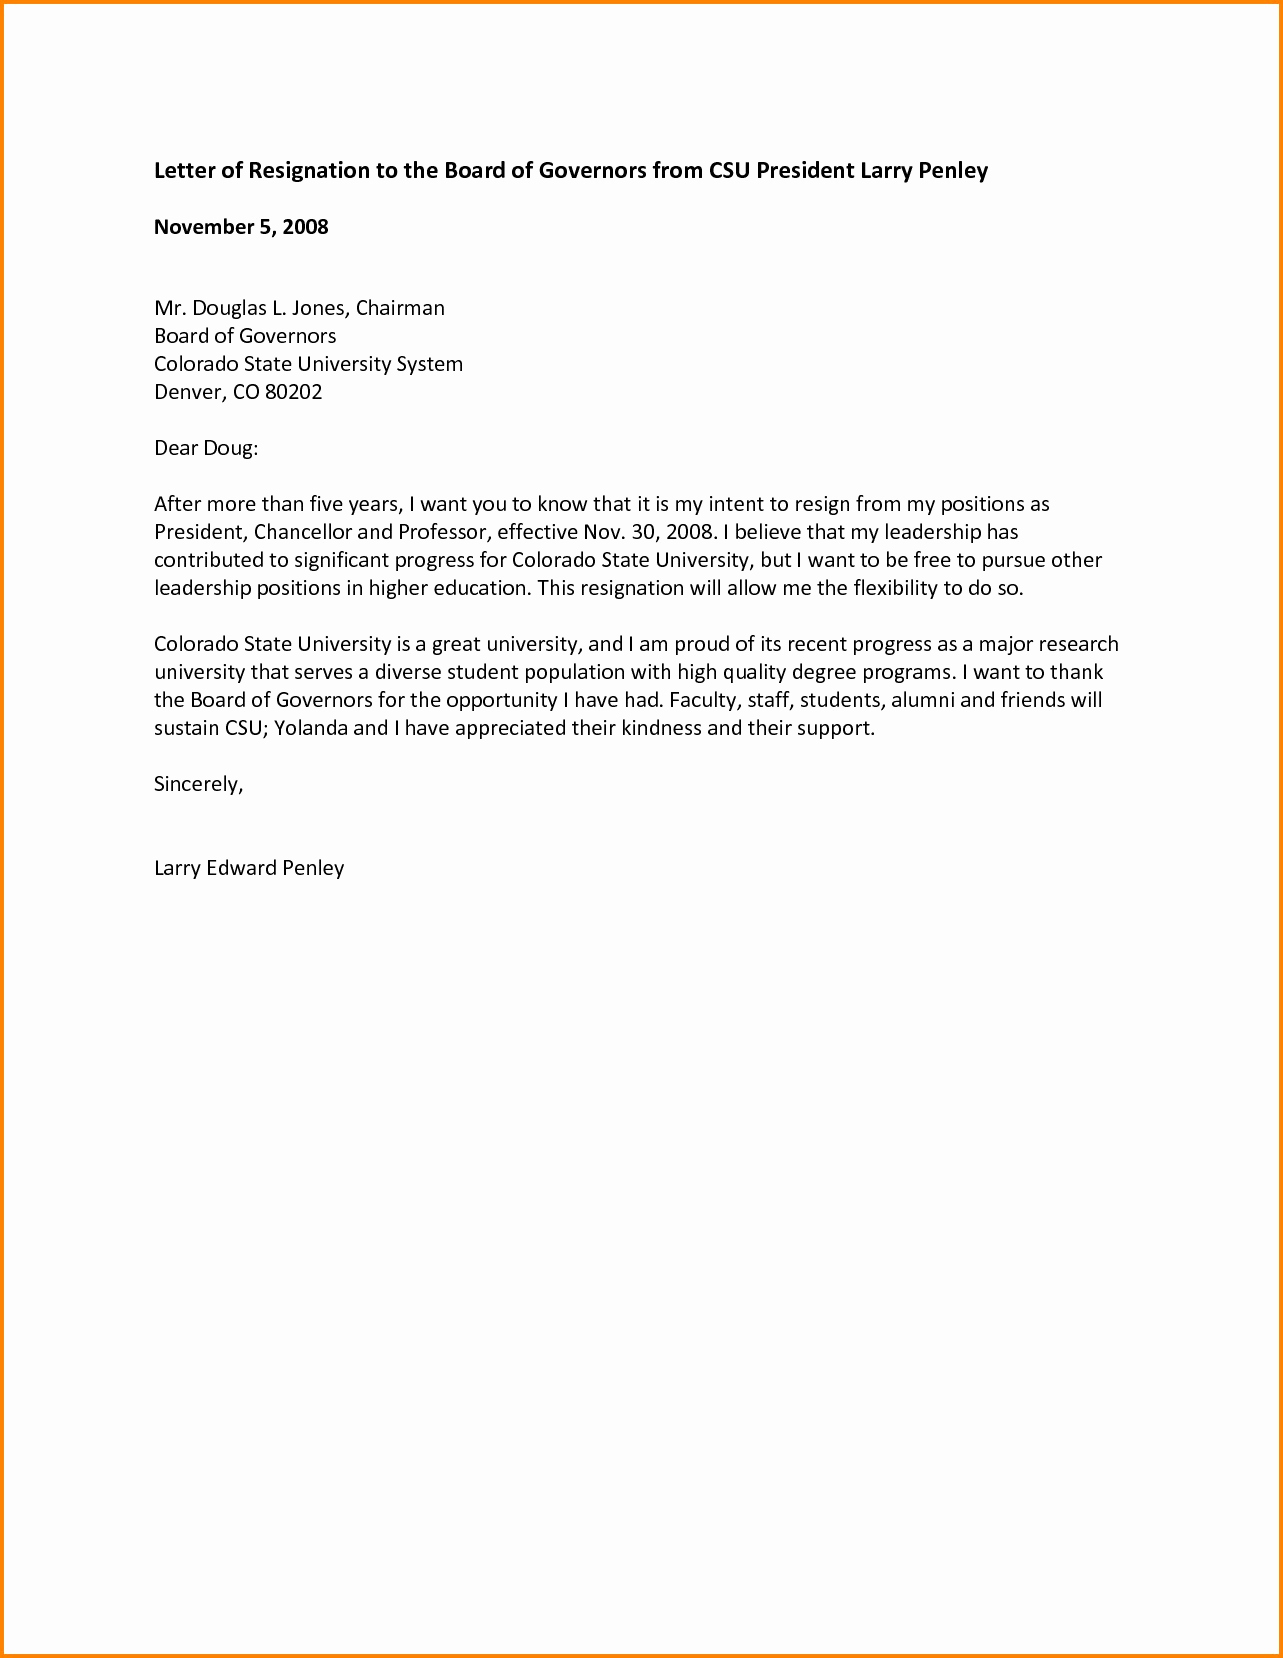 Board Member Resignation Letter Template - Board Directors Resignation Letter Inspirational Sample Board